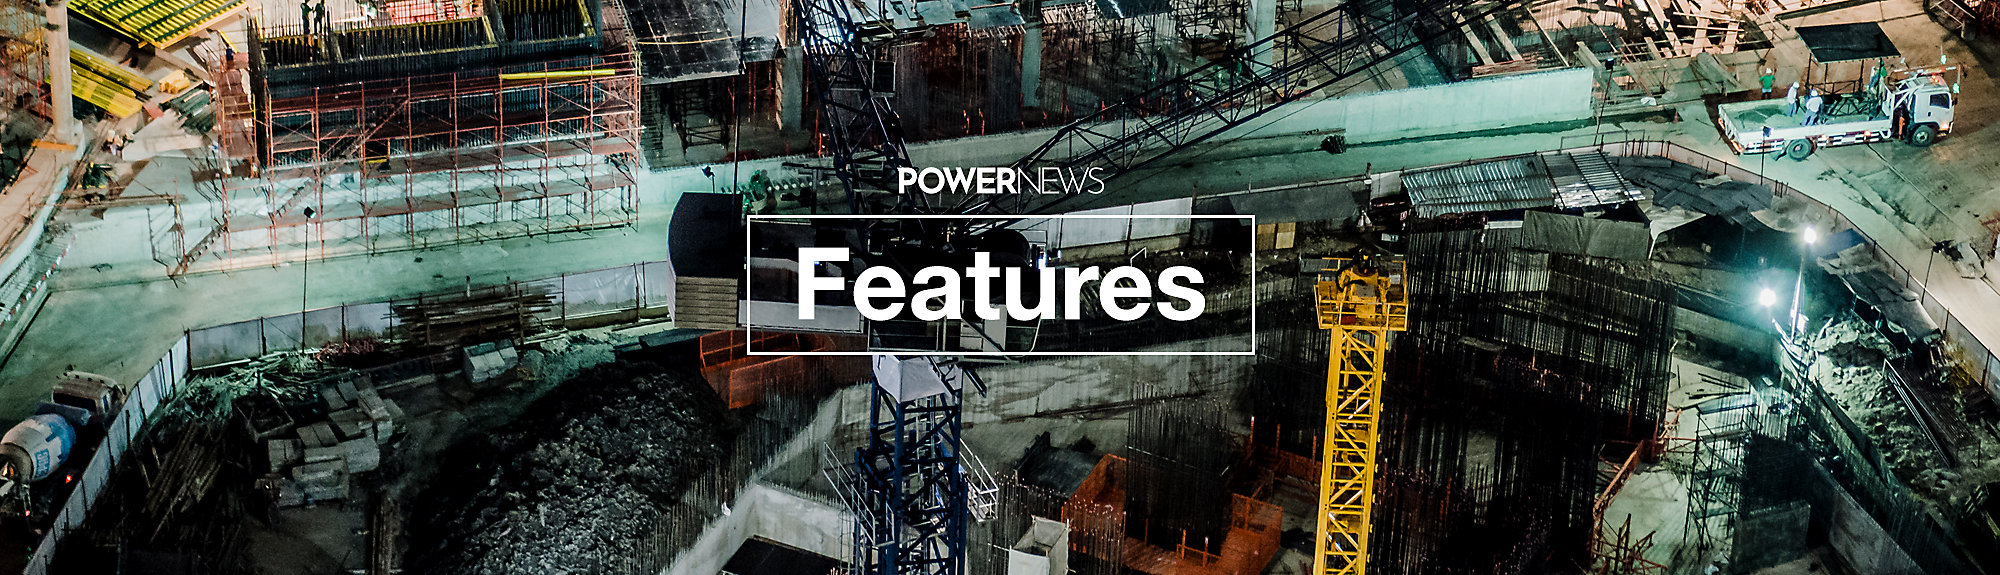 Features - Powernews